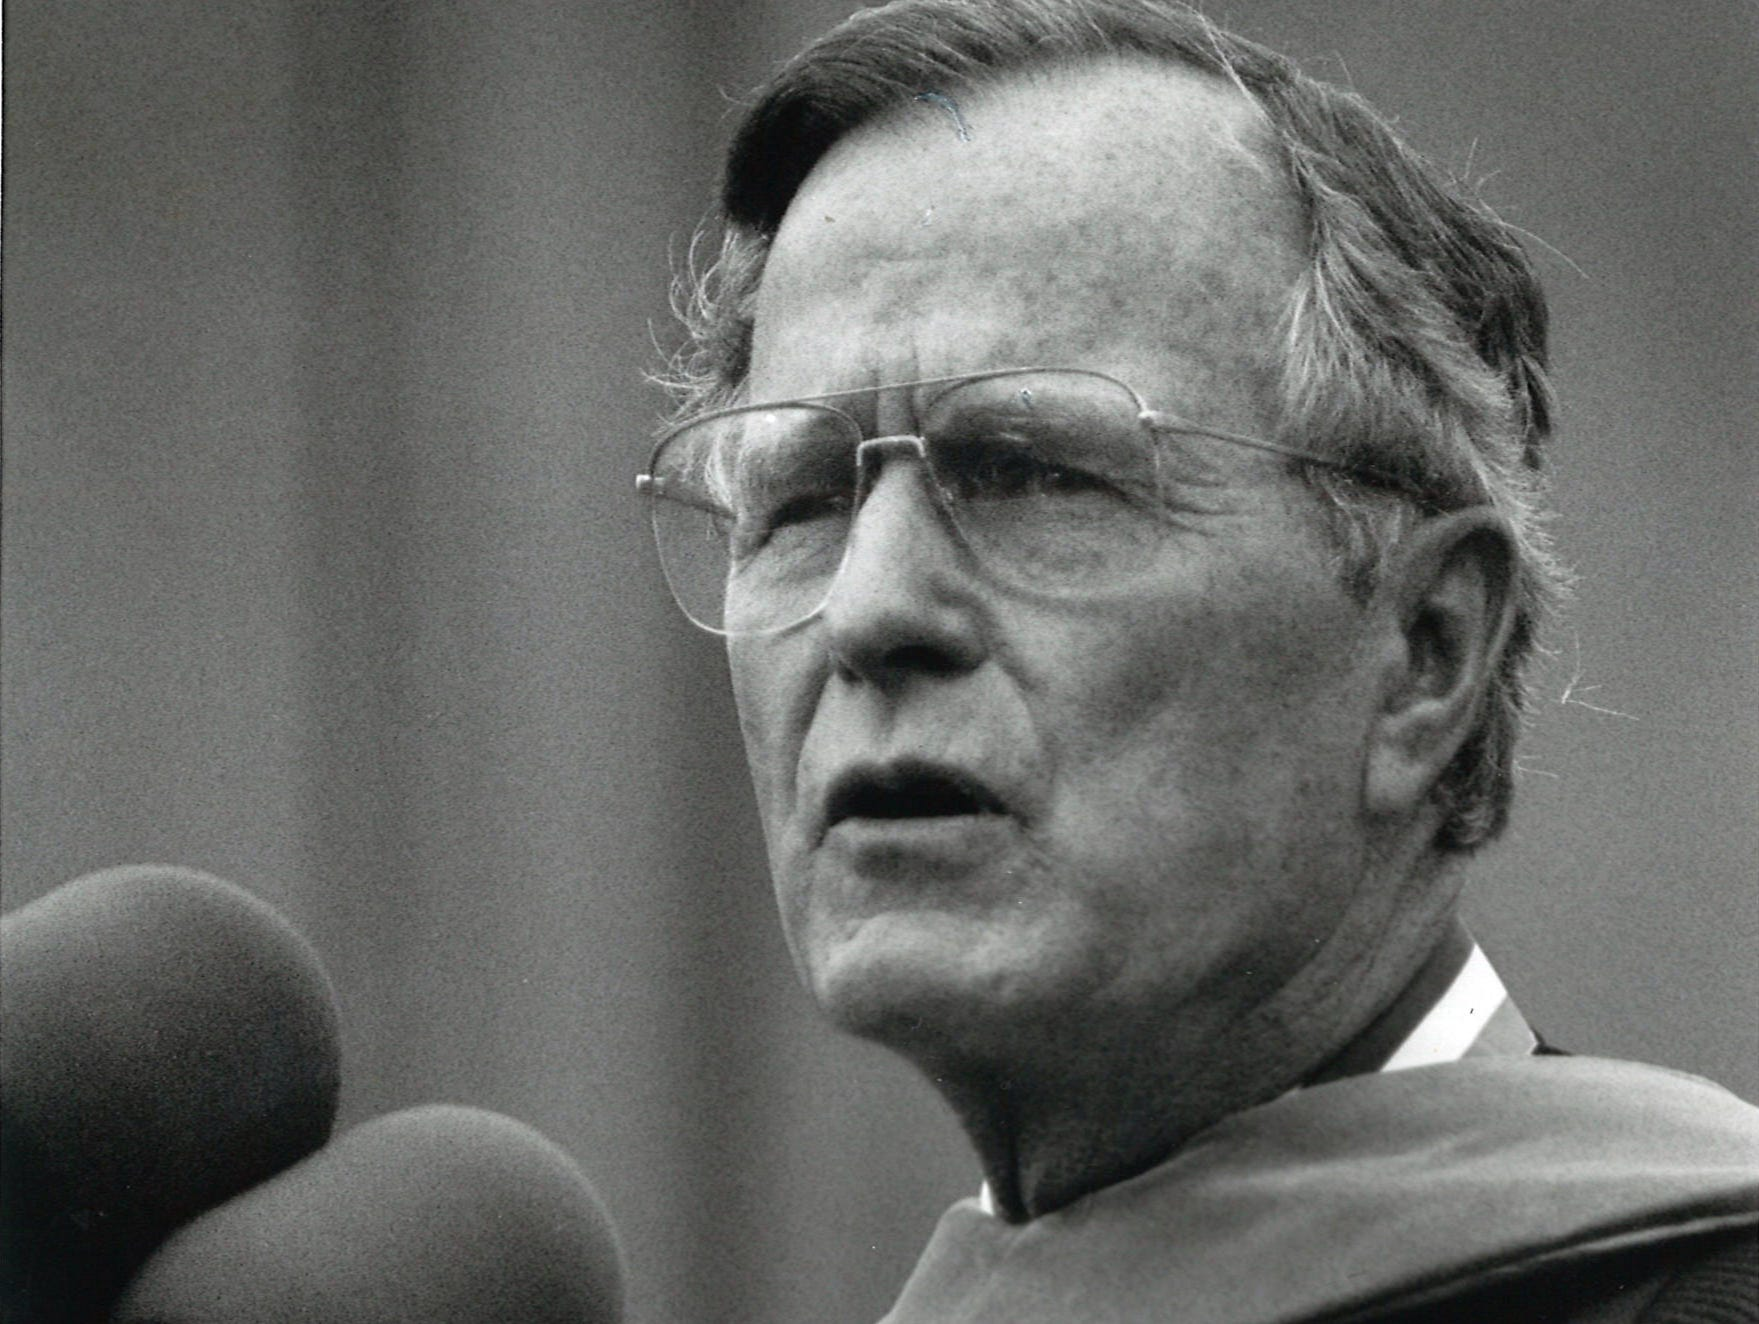 President George Bush delivers his commencement address at Texas A&I University on May 11, 1990. Bush stressed America's need to return to the forefront in science and technology and promised to put a man on Mars in the future.